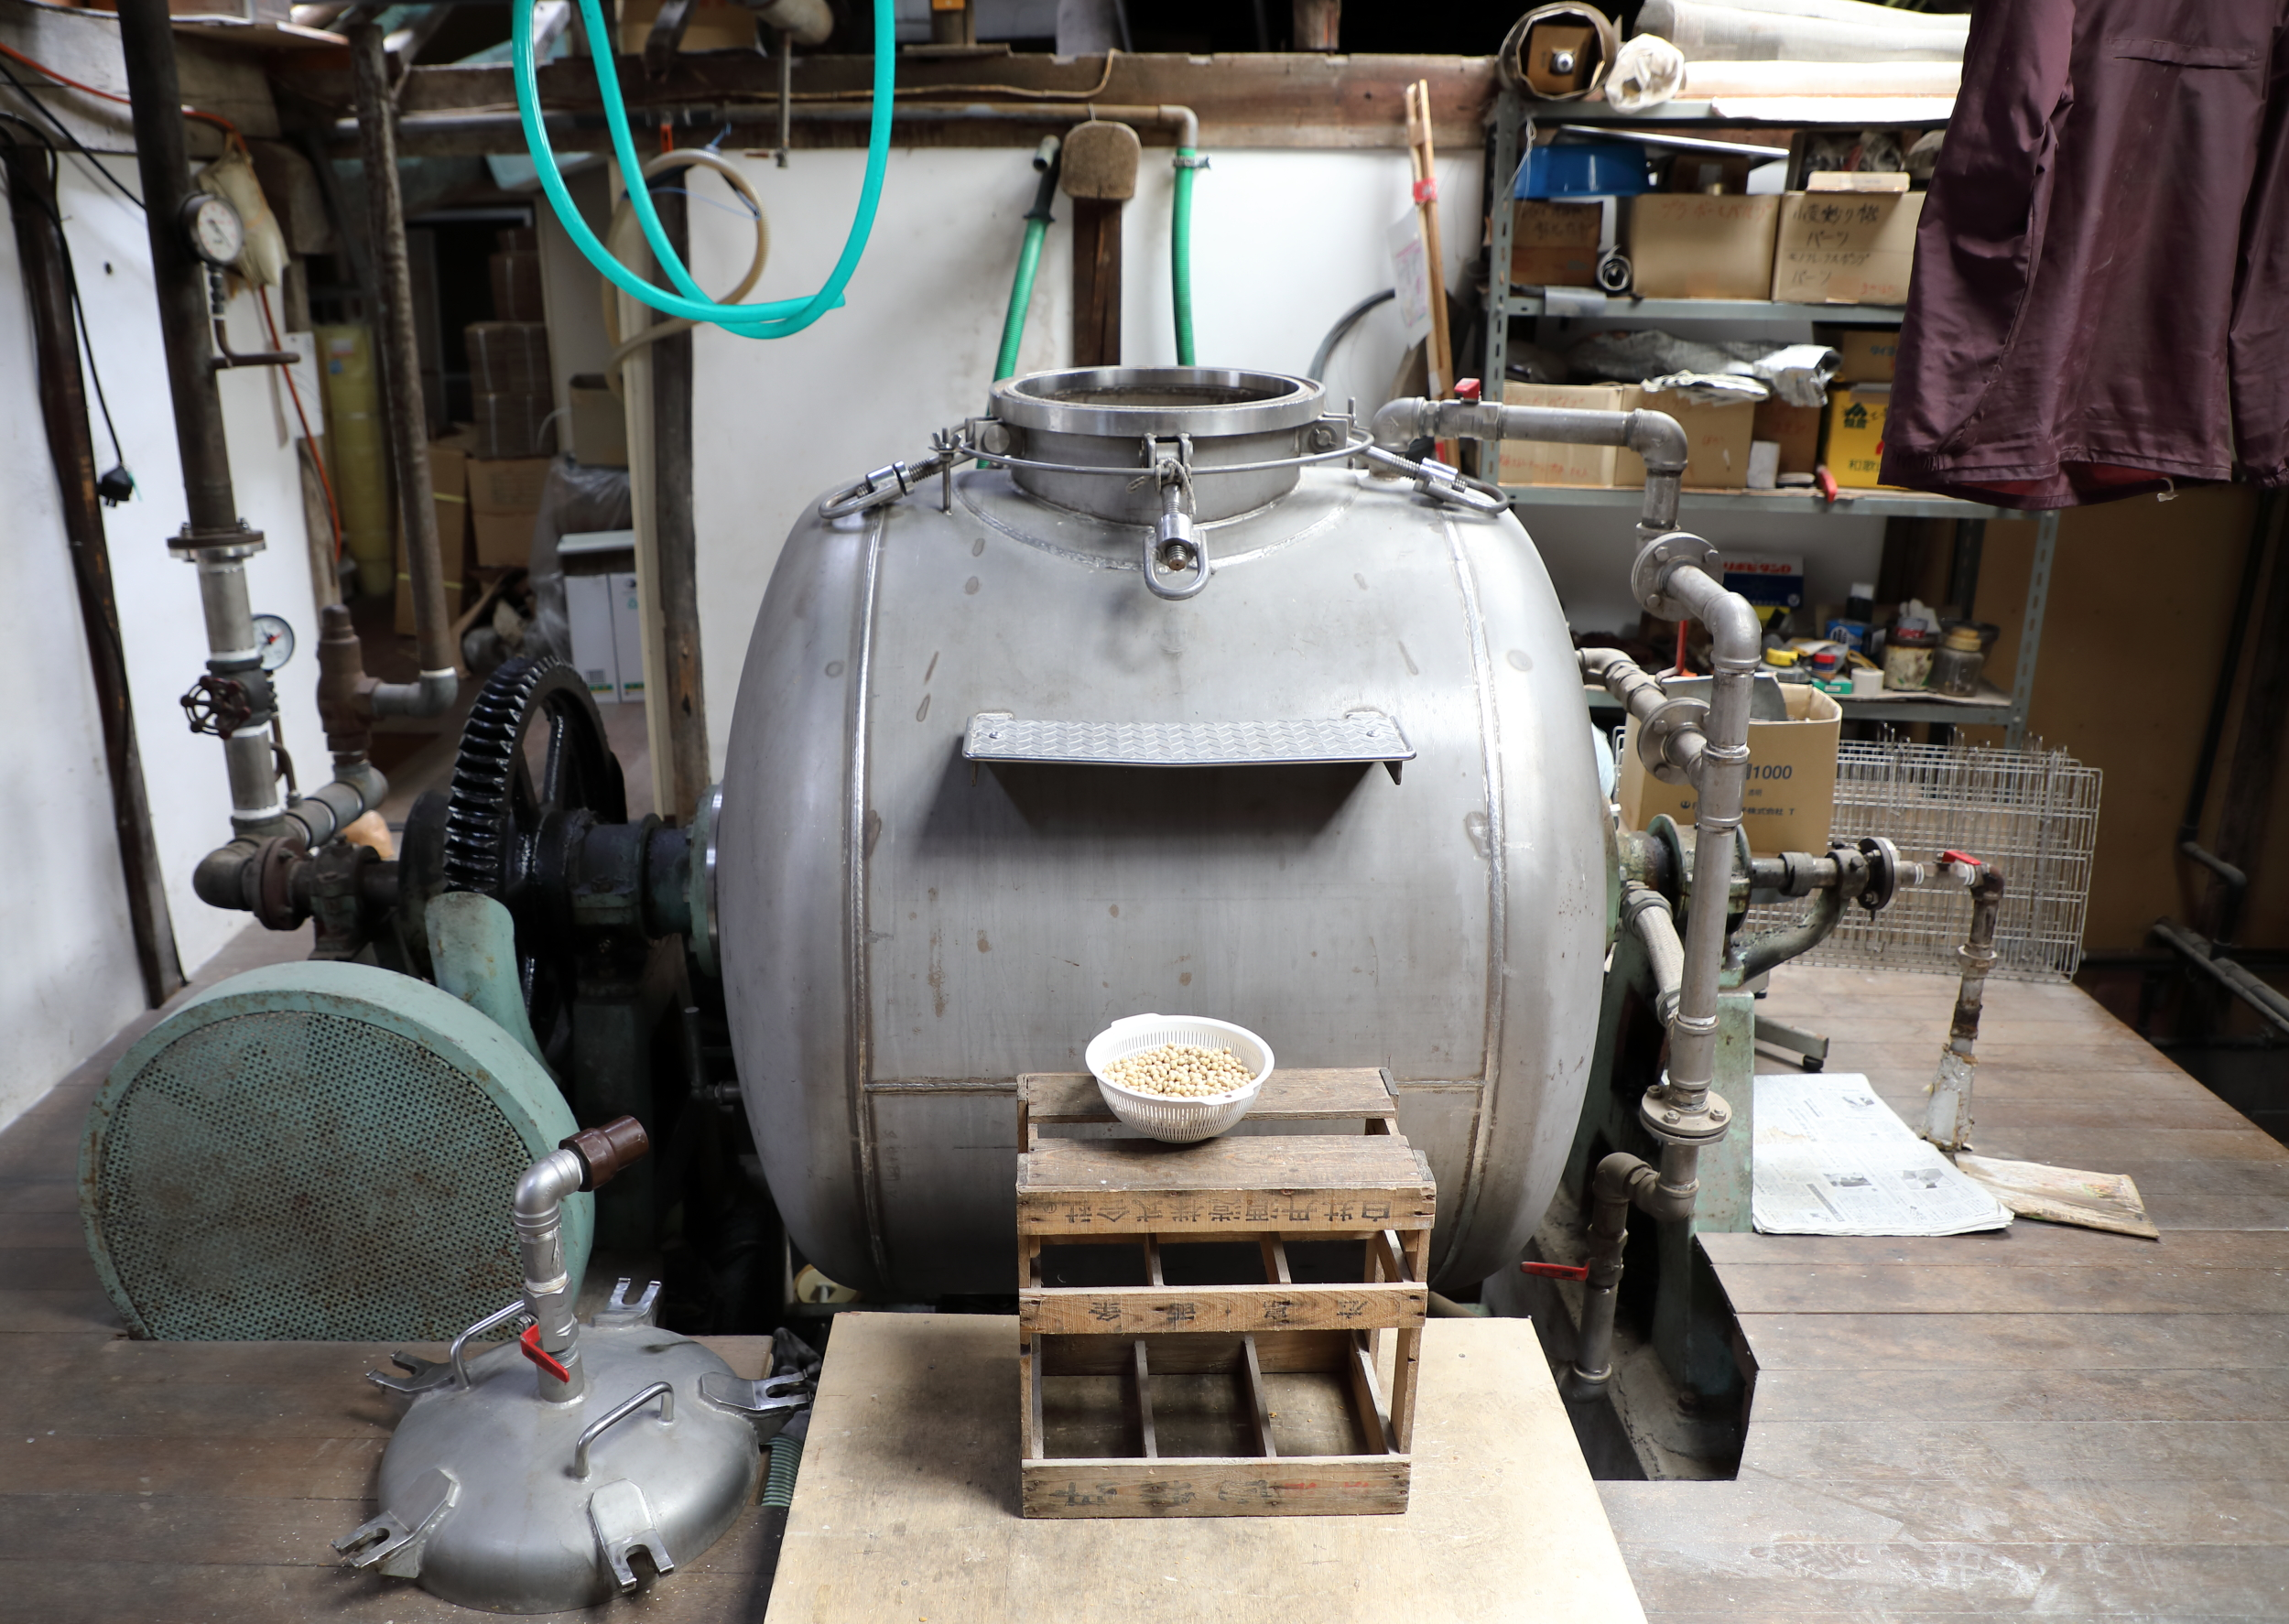 The large kettle used to steam the soy beans in the first step of the process of making Okamoto's soy sauce.